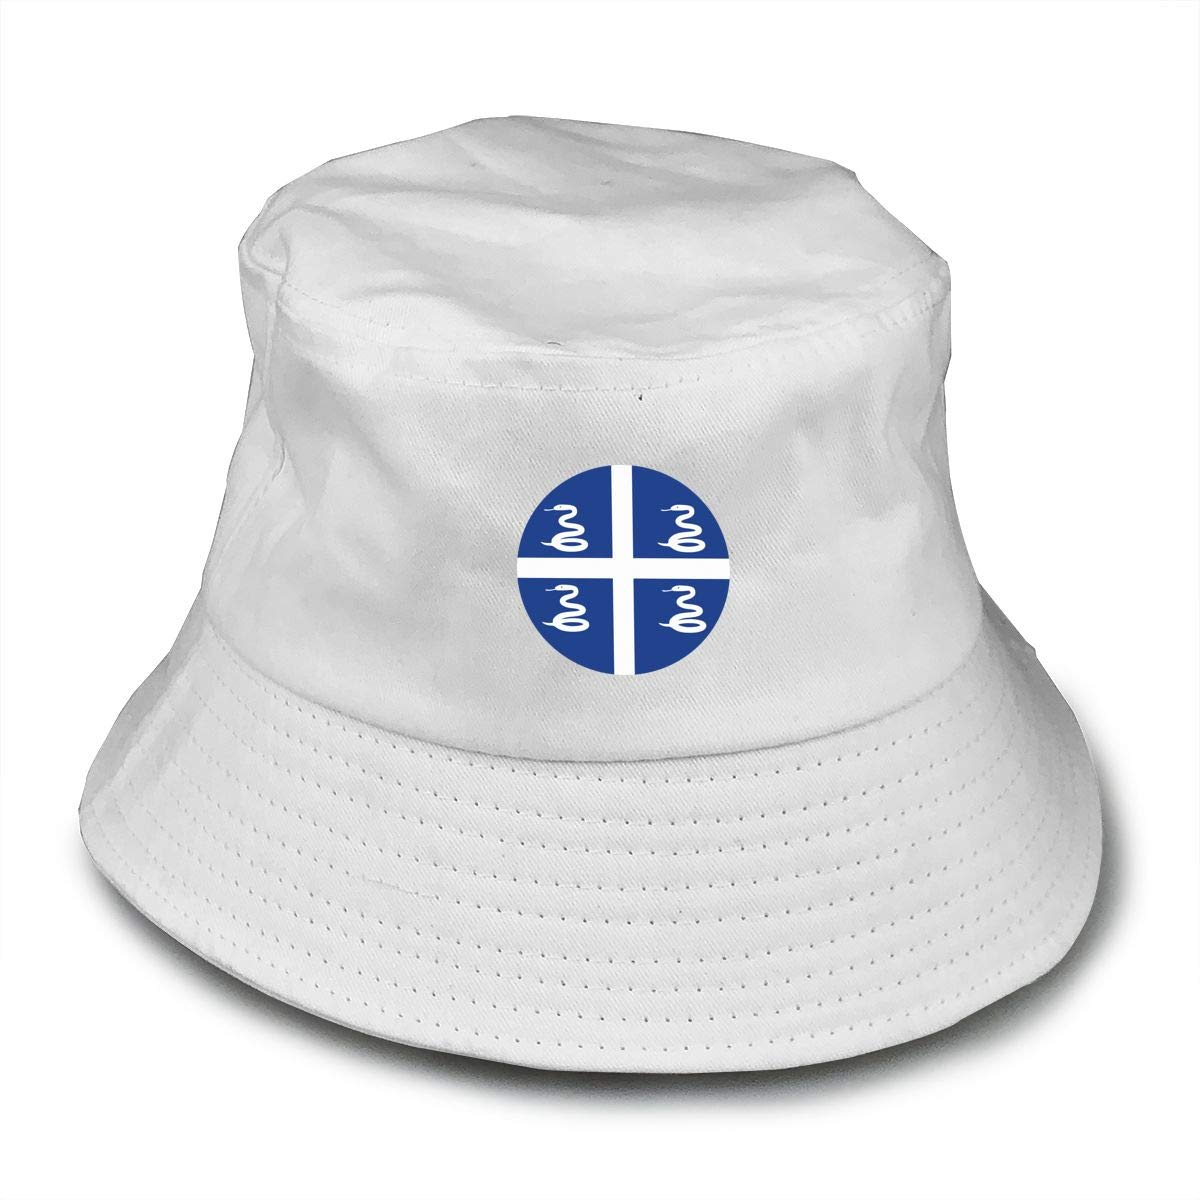 NDFGR Flag of Martinique Unisex Cotton Packable Black Travel Bucket Hat Fishing Cap